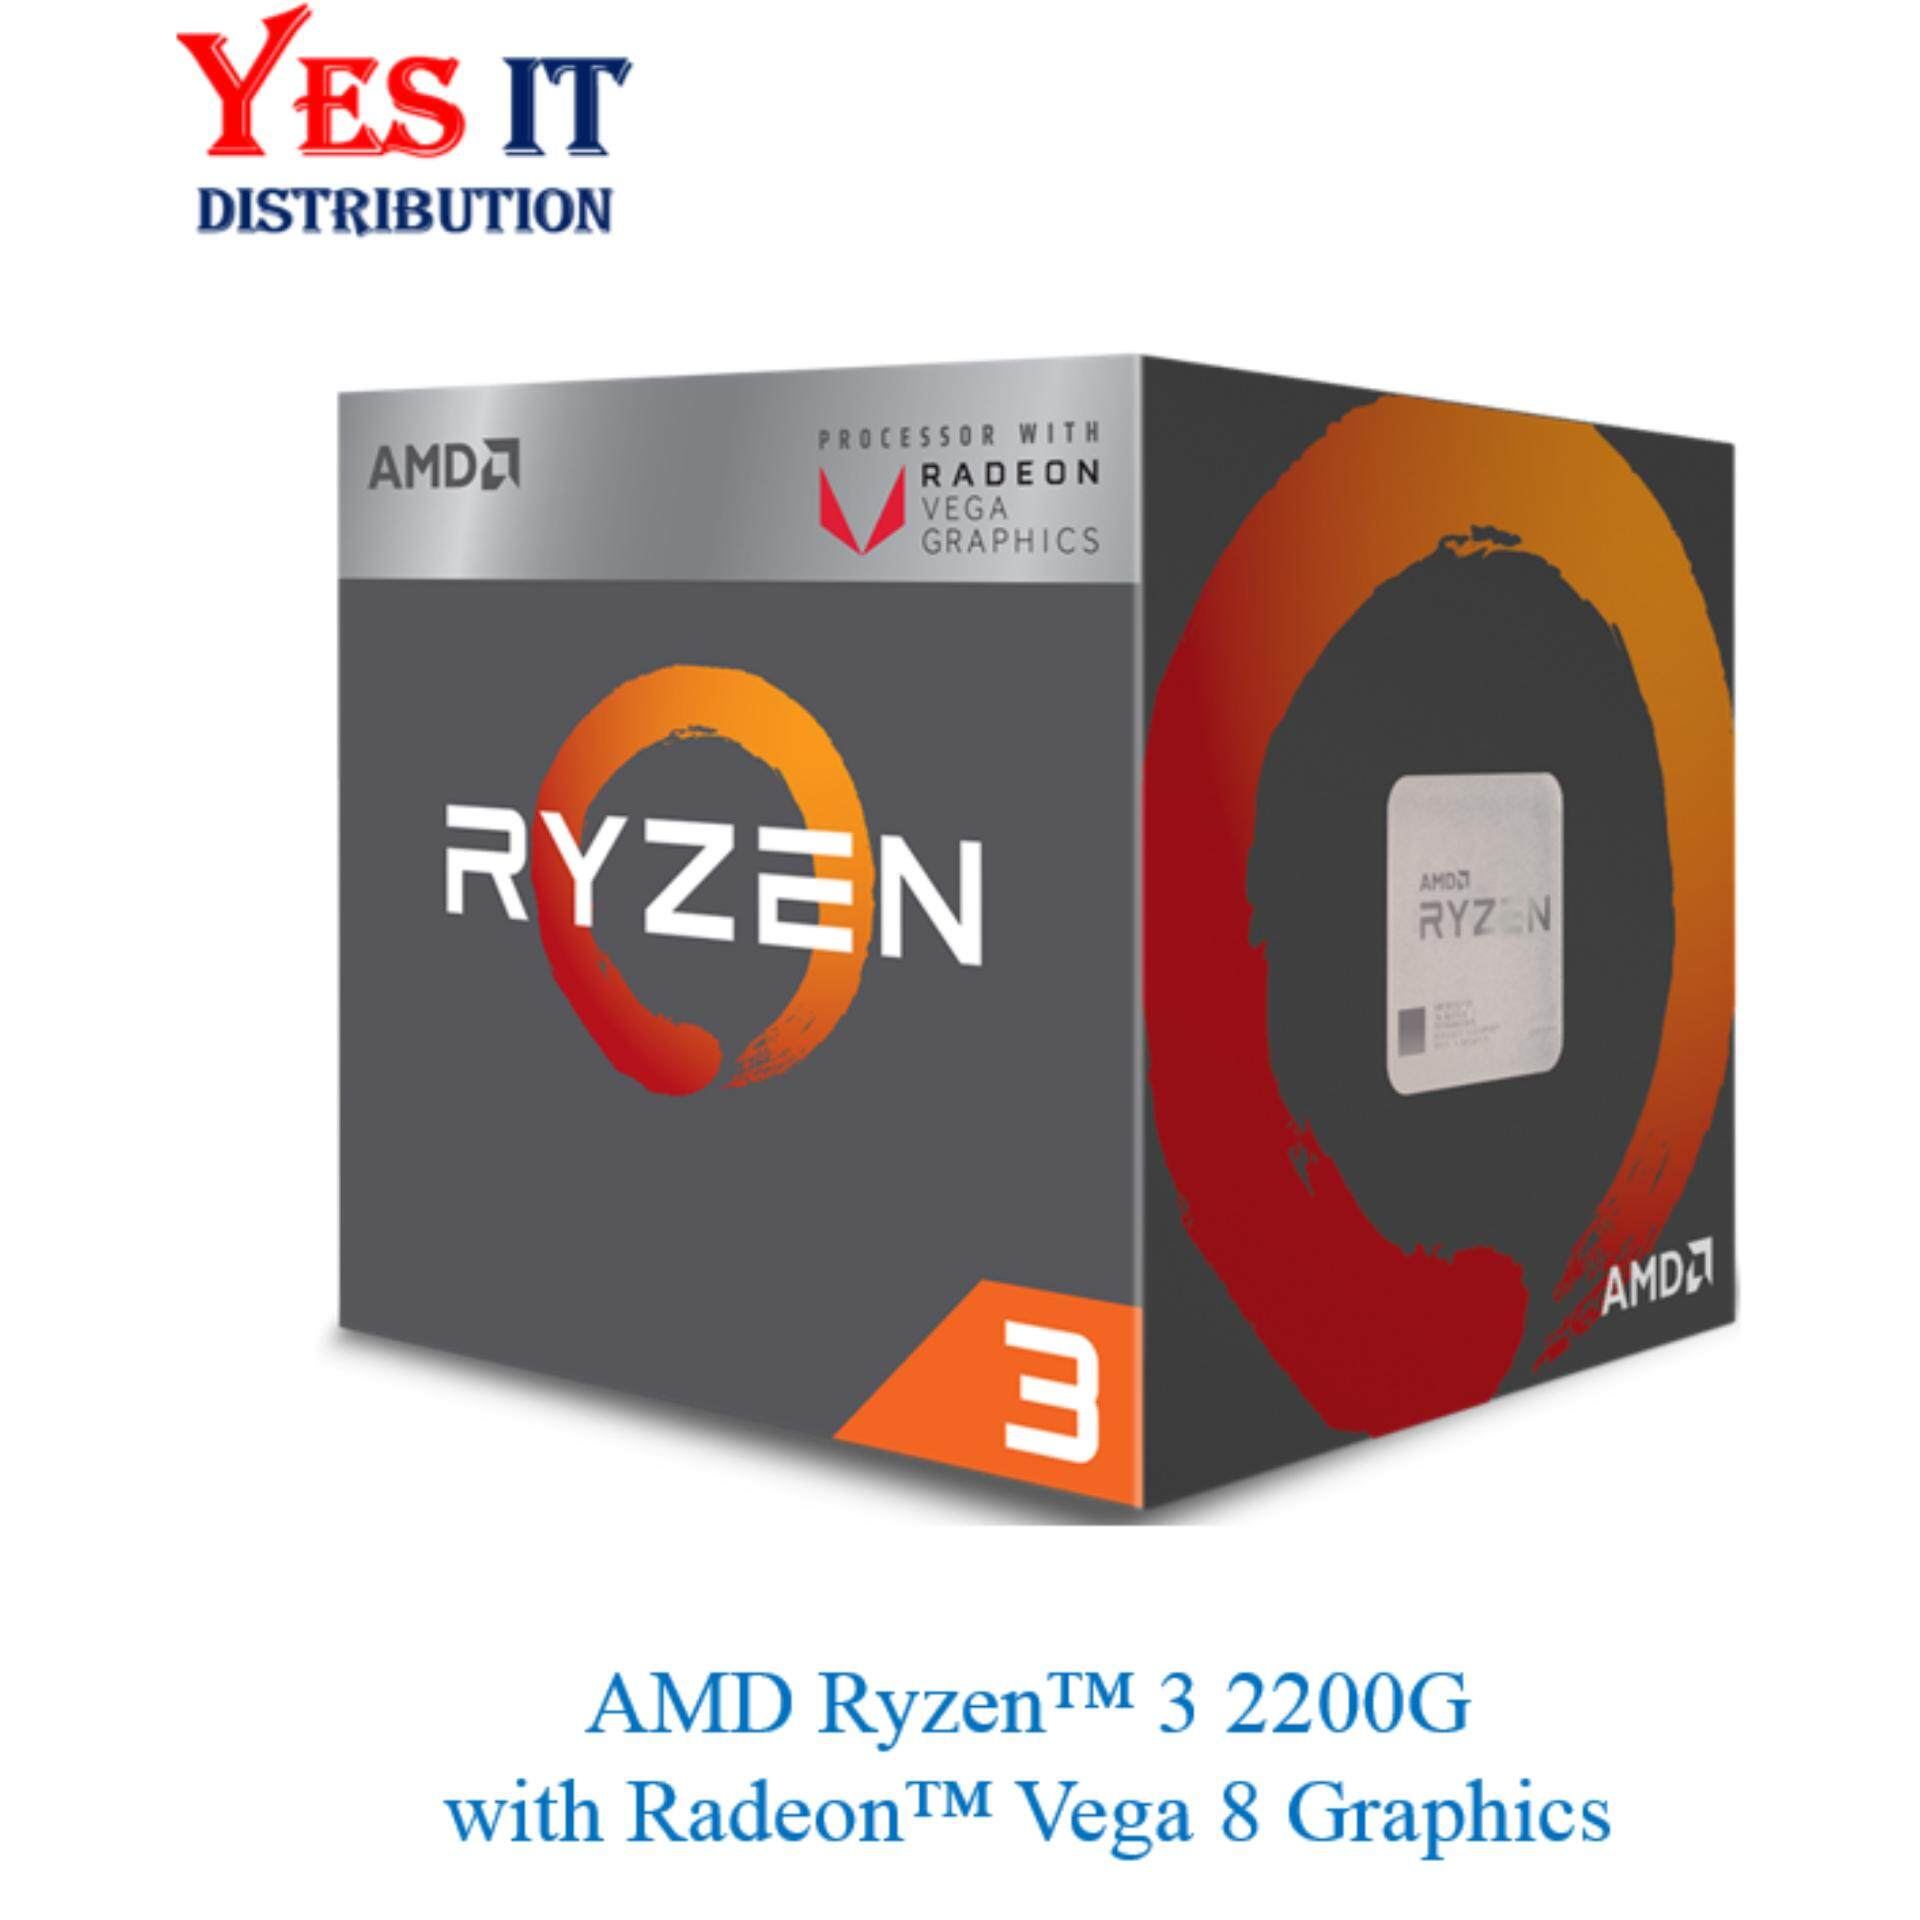 AMD Ryzen 3 2200G With Radeon Vega 8 Graphics Processor 3 7Ghz 6MB Cache